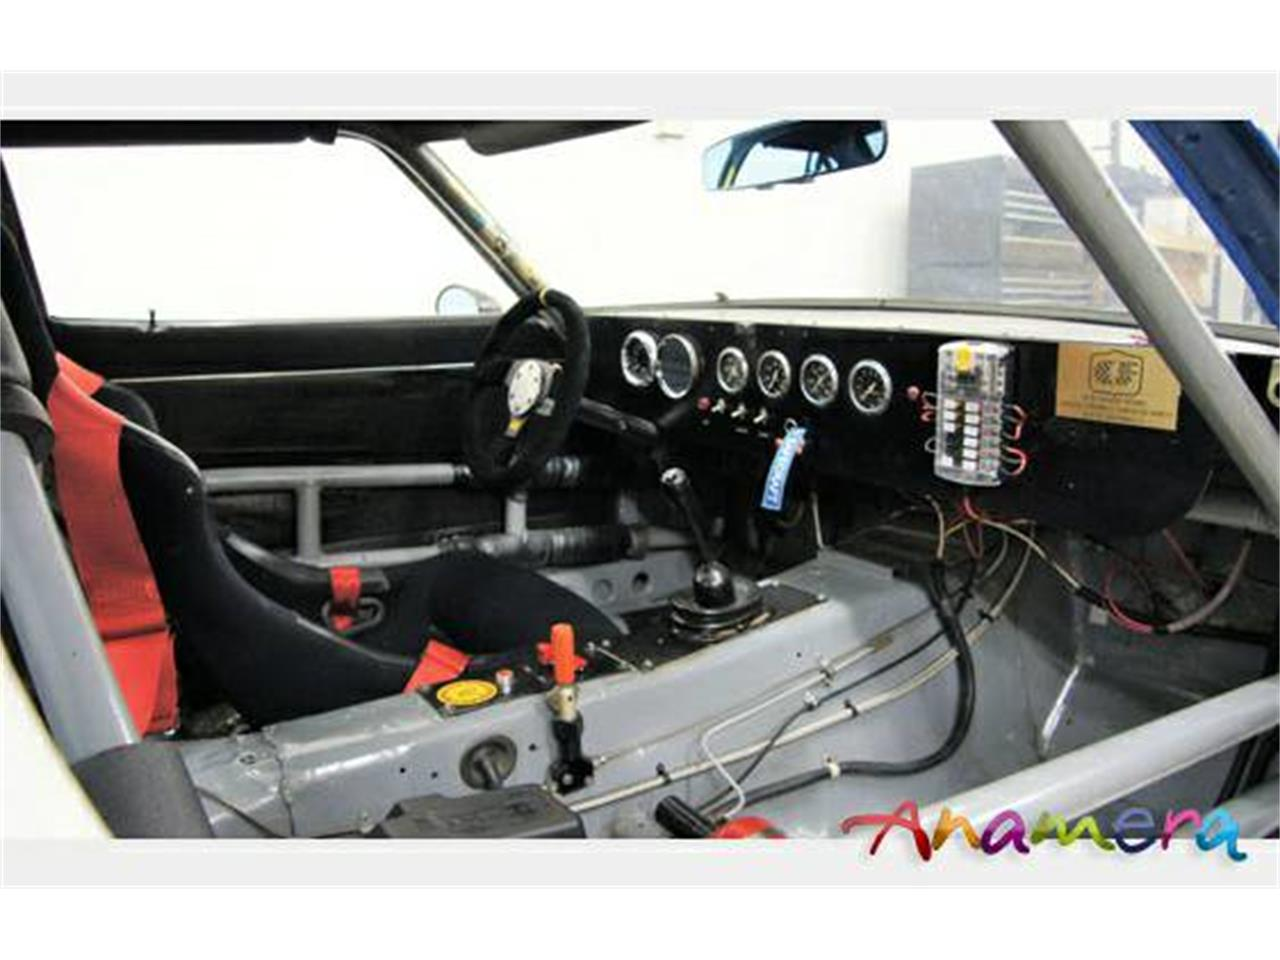 1970 Datsun 240Z Historic Macau F.I.A Race Car (CC-955794) for sale in N Hollywood, California